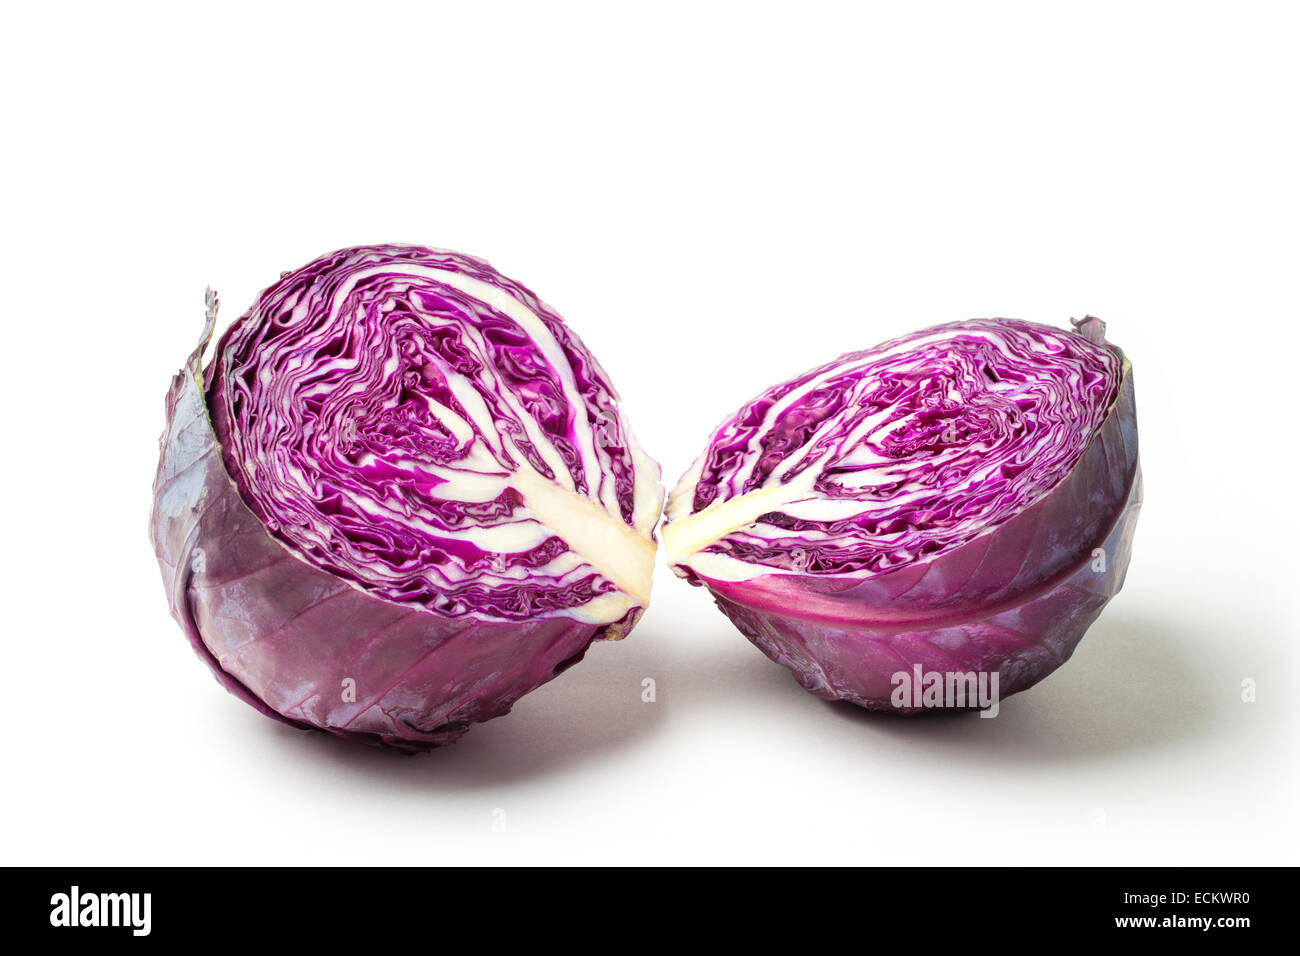 Cut red cabbage isolated on white background. Stock Photo